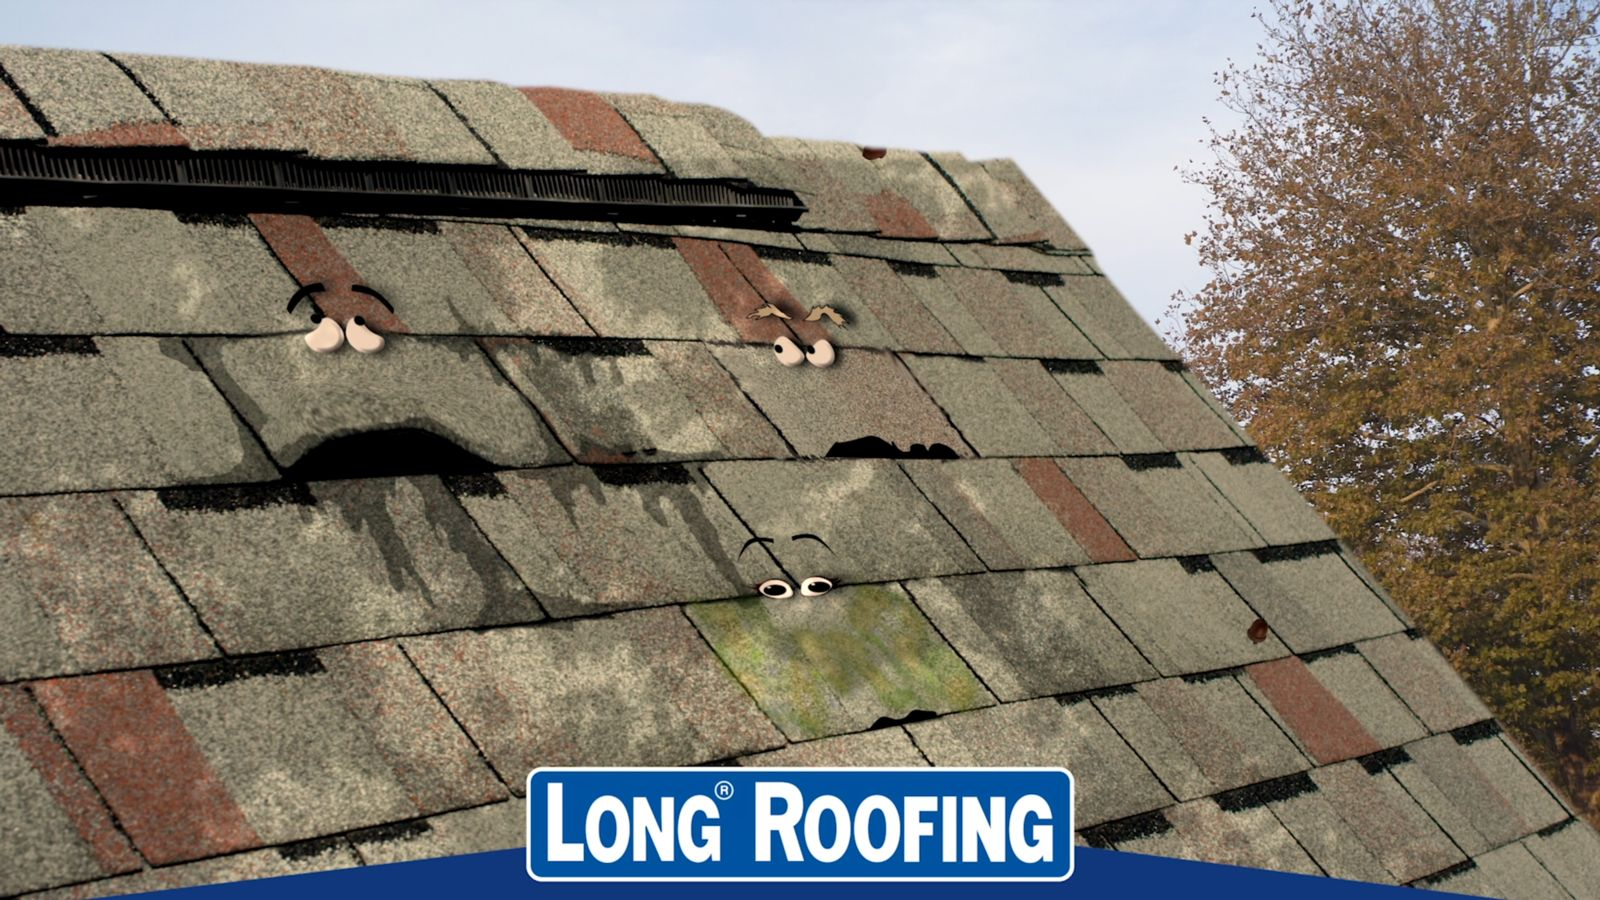 Long Roofing Shingles